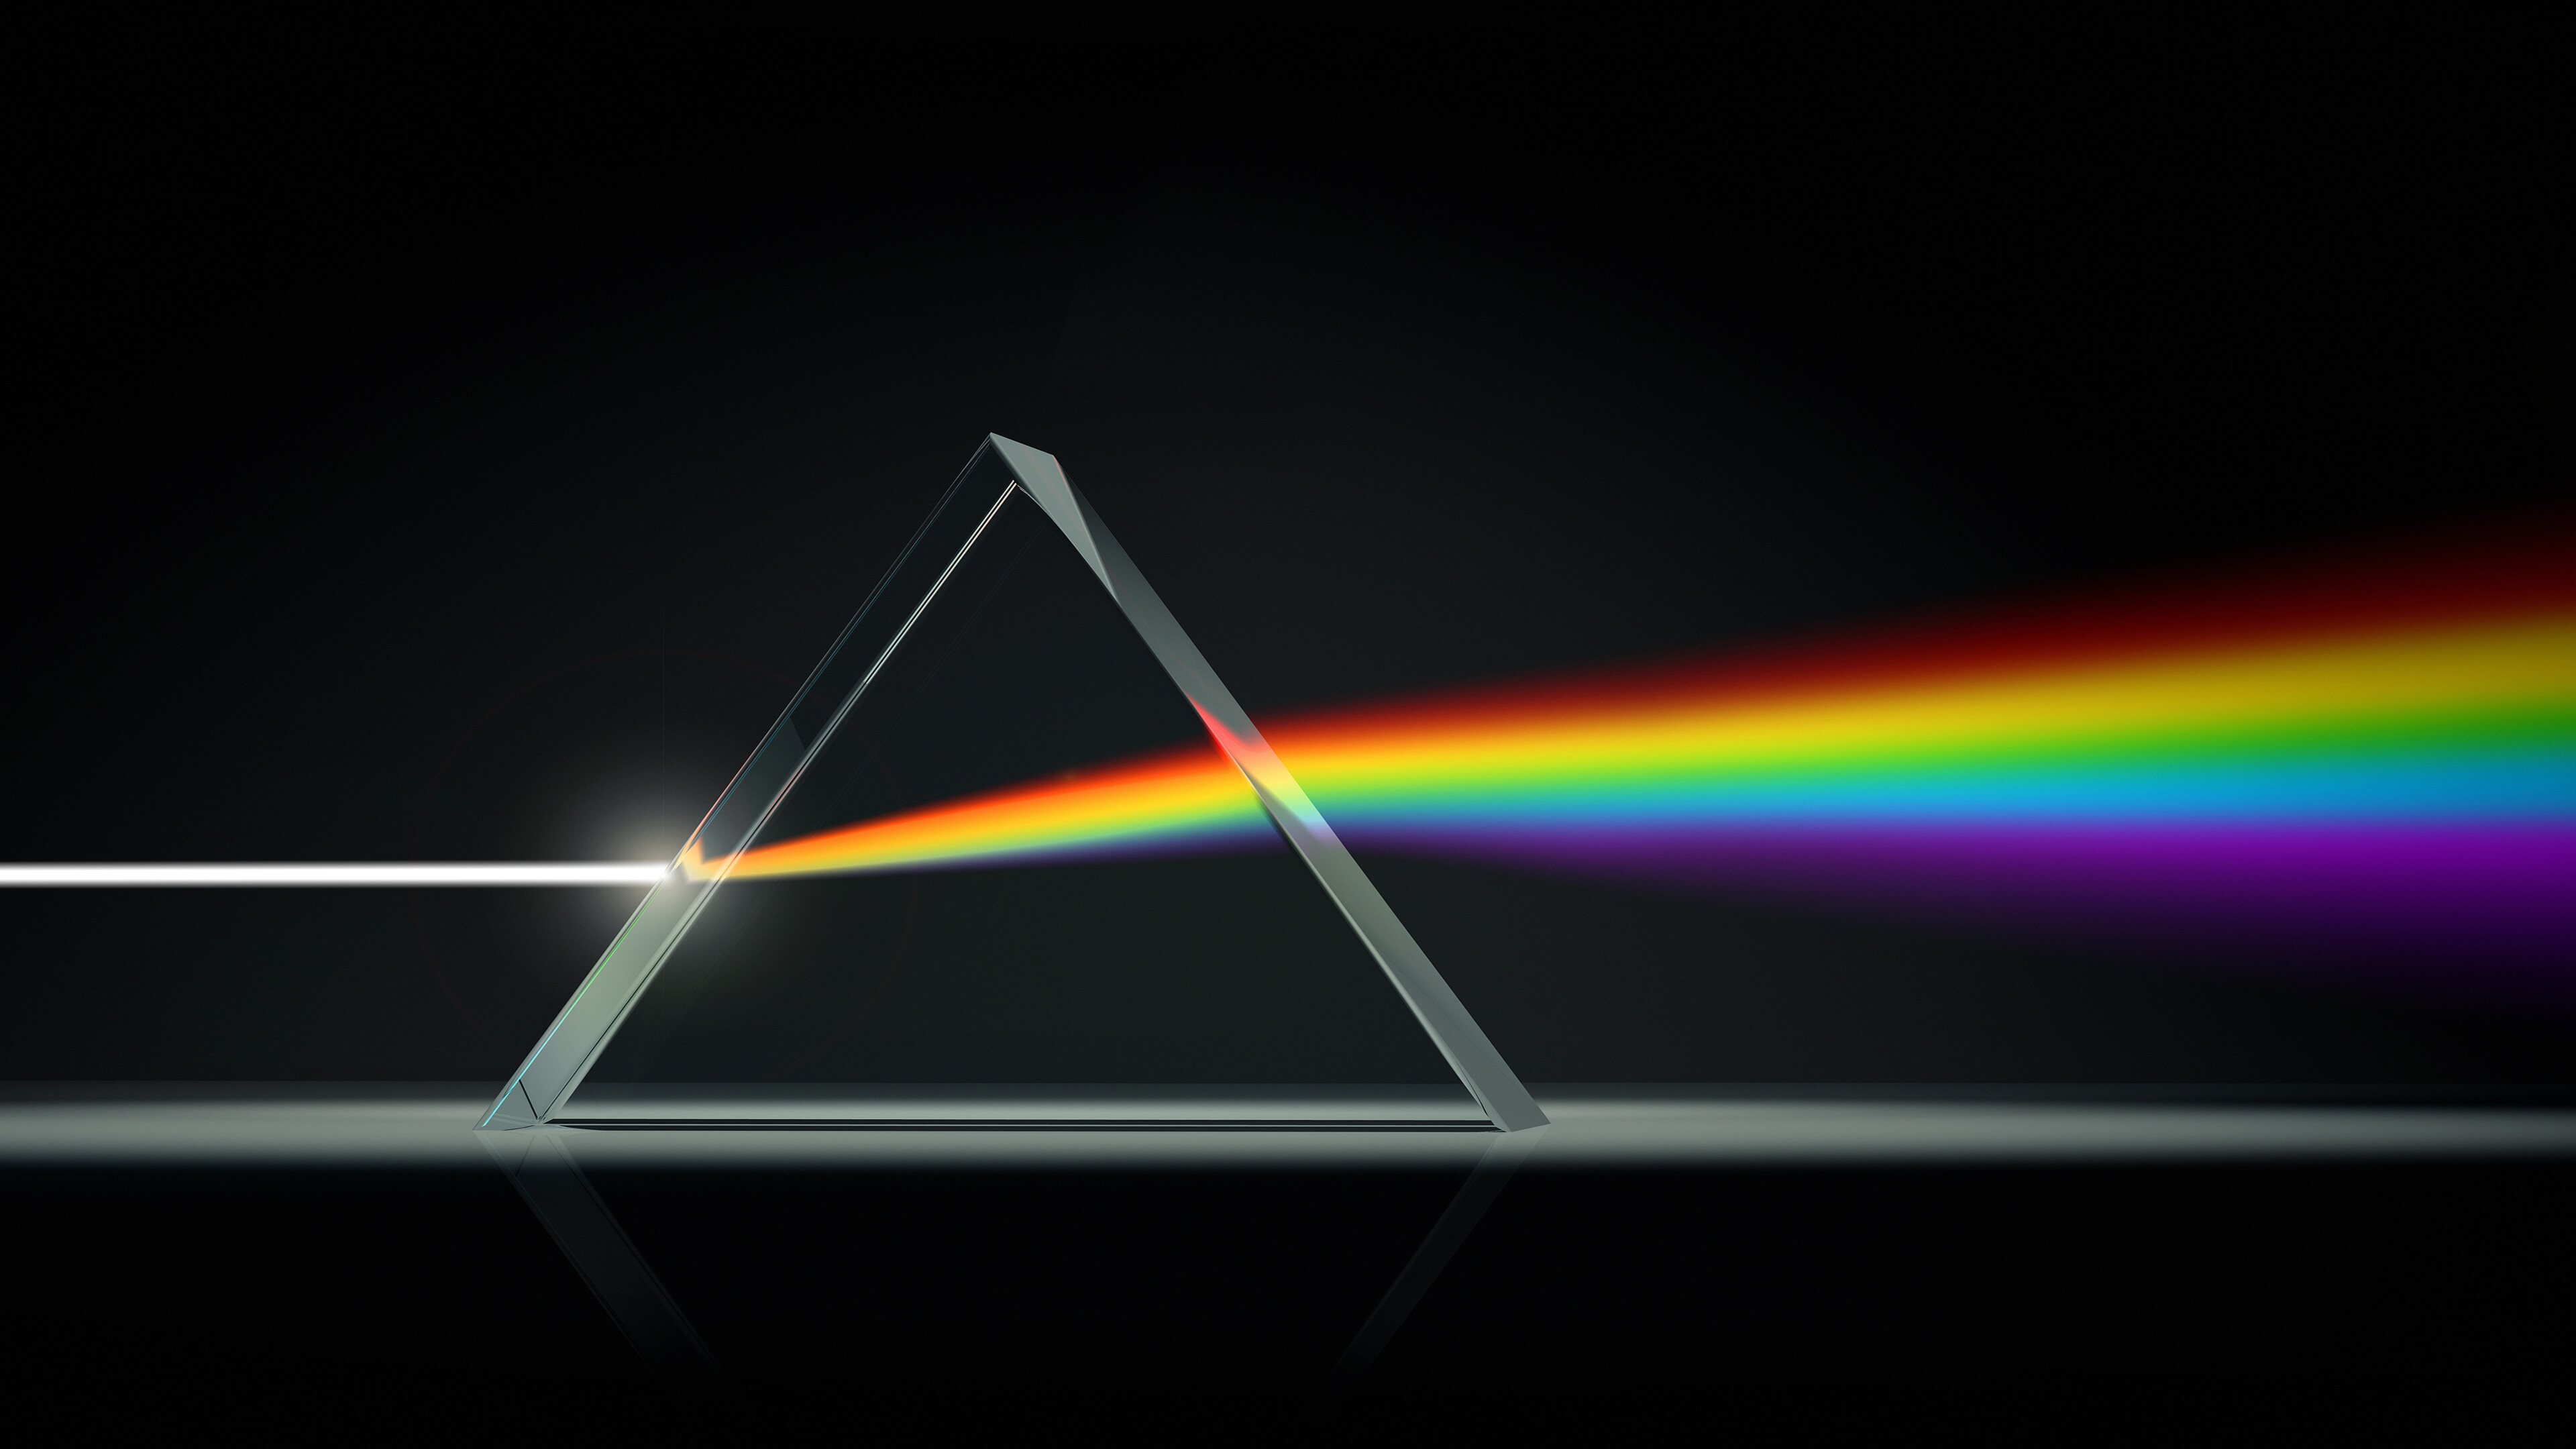 prism image to use as wallpaper 16:9 aspect